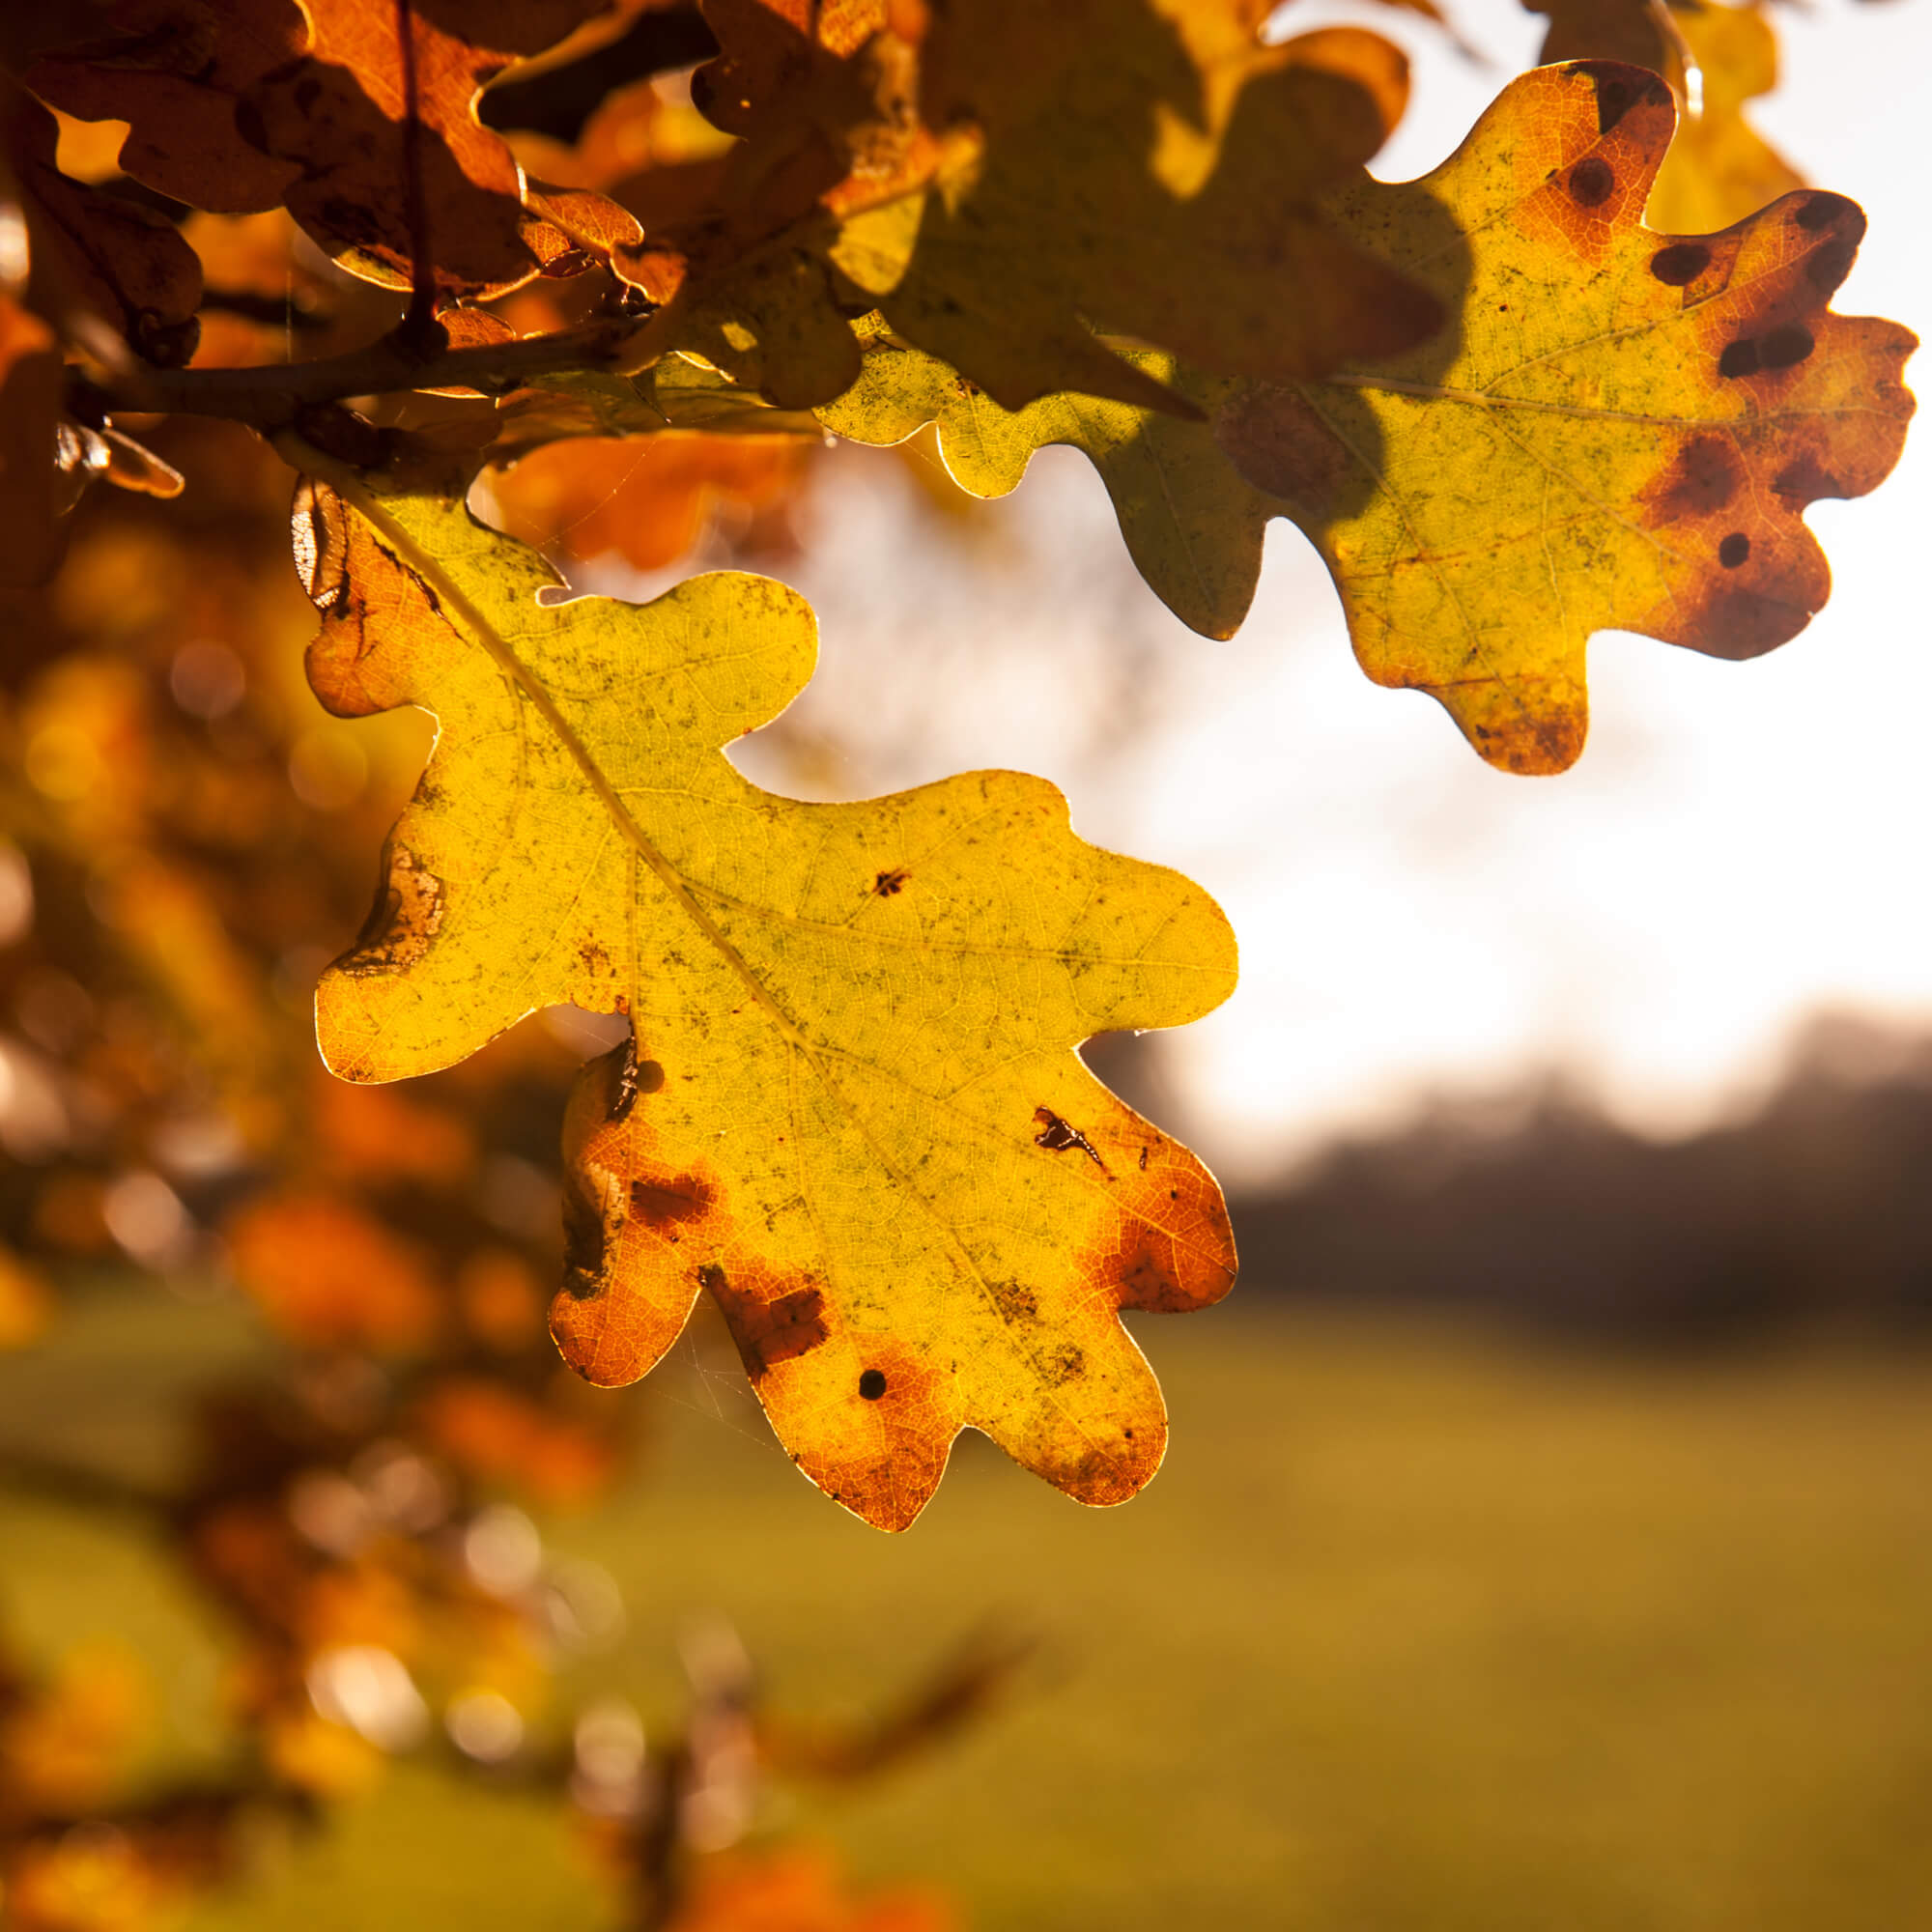 An leaf turning brown on an oak tree